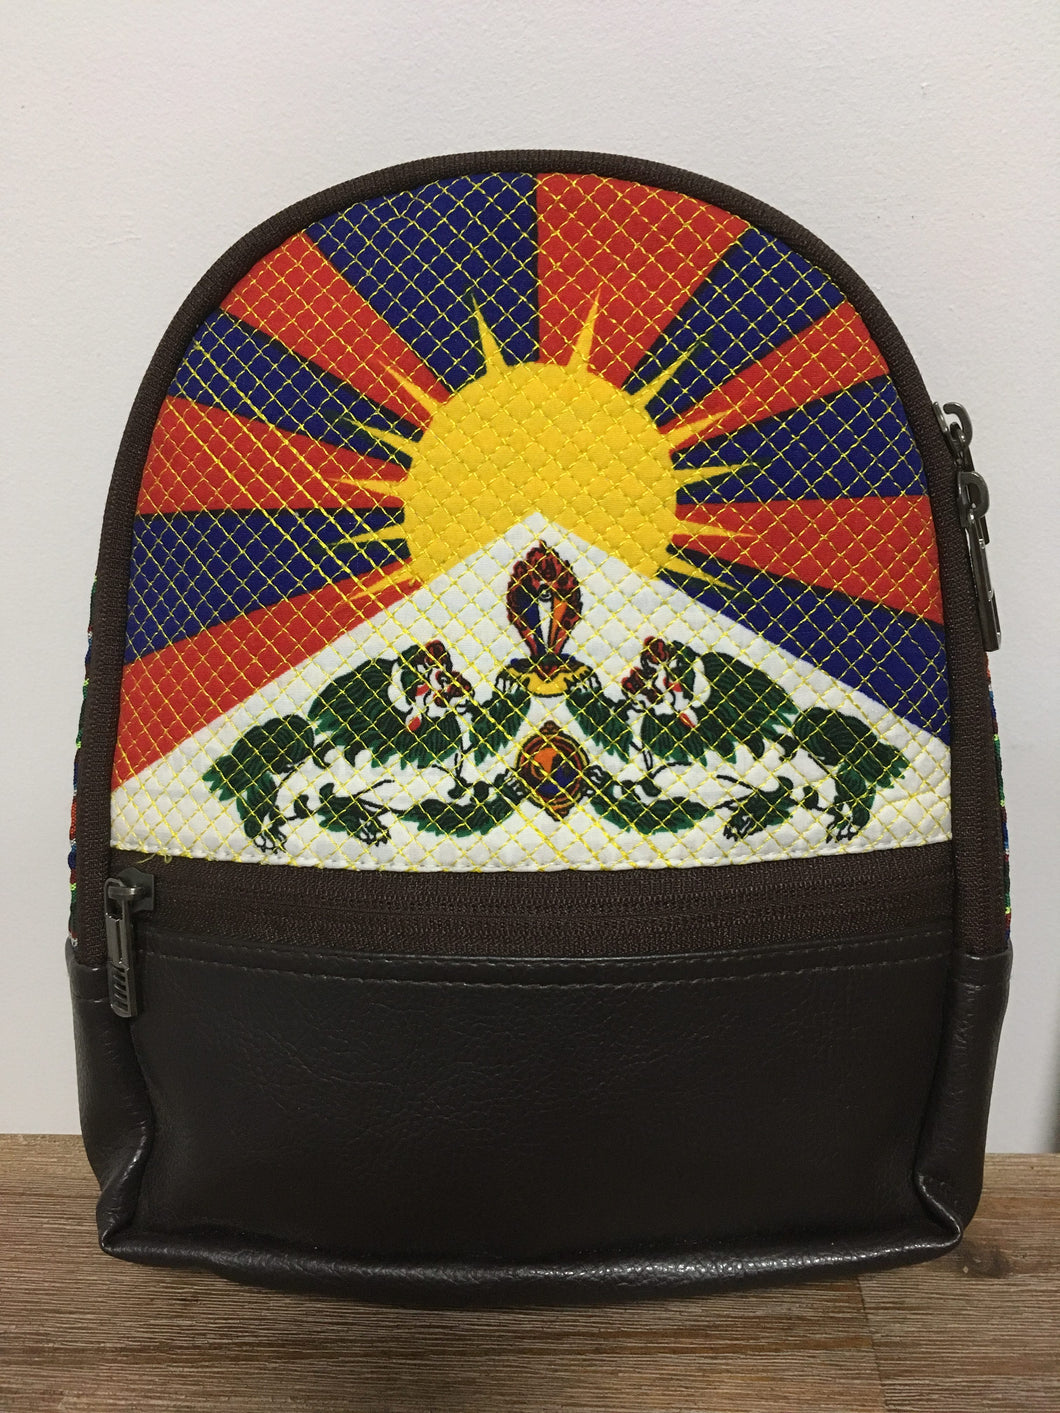 Tibetan Flag Children's Backpack Chocolate brown imitation leather